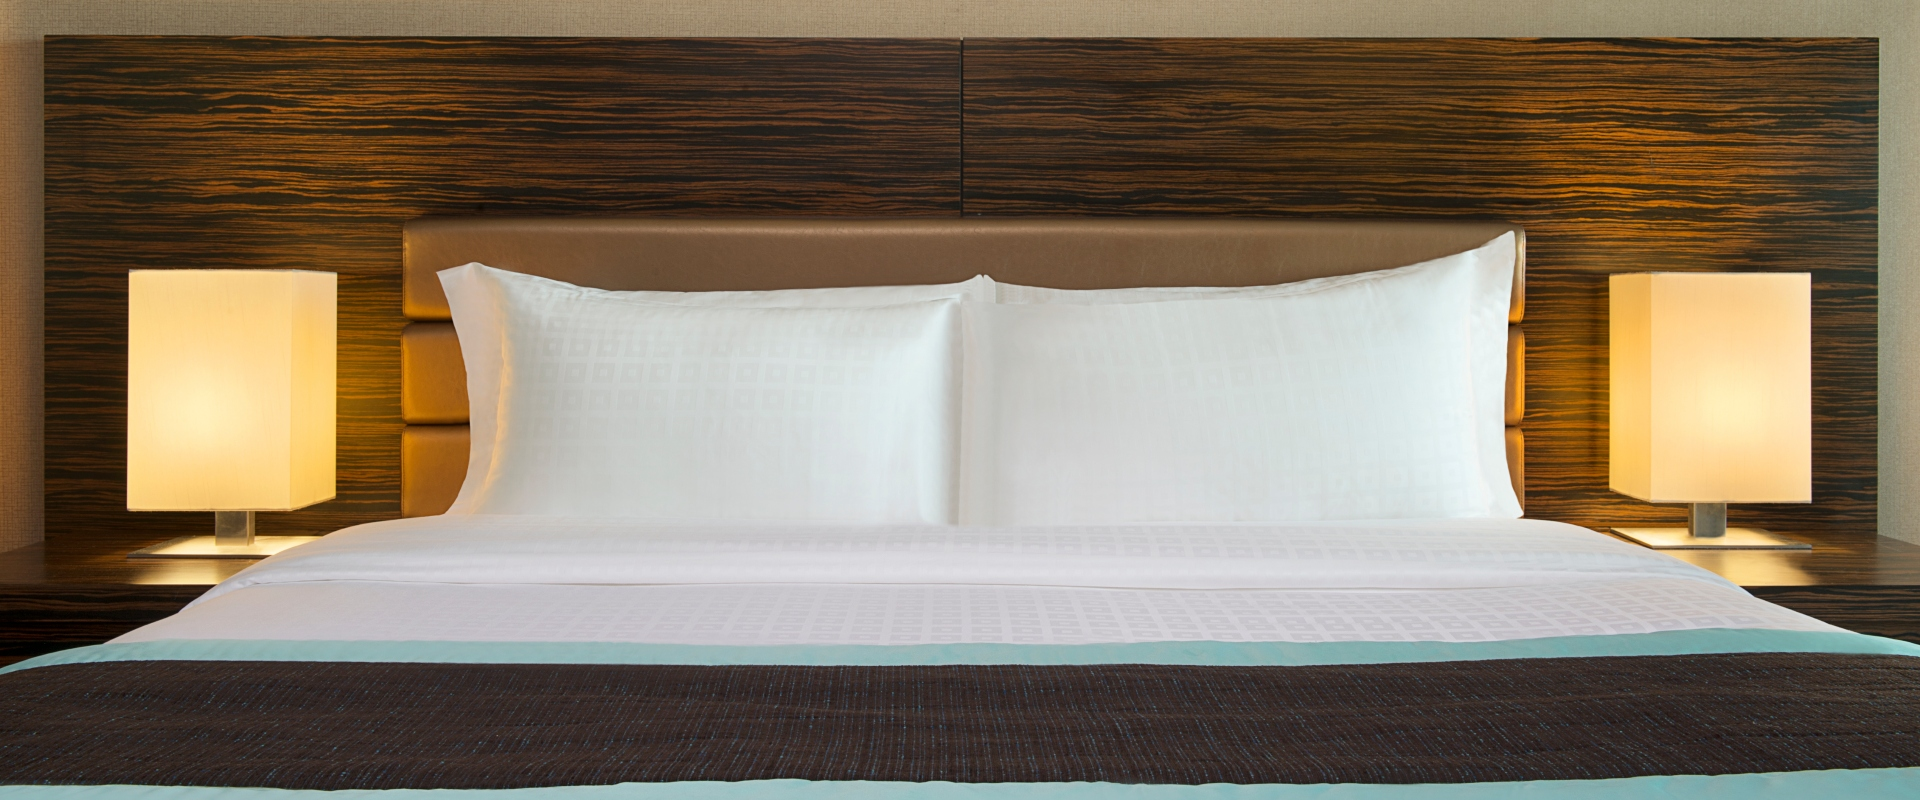 King_Bed_Detail_(1)1.jpg